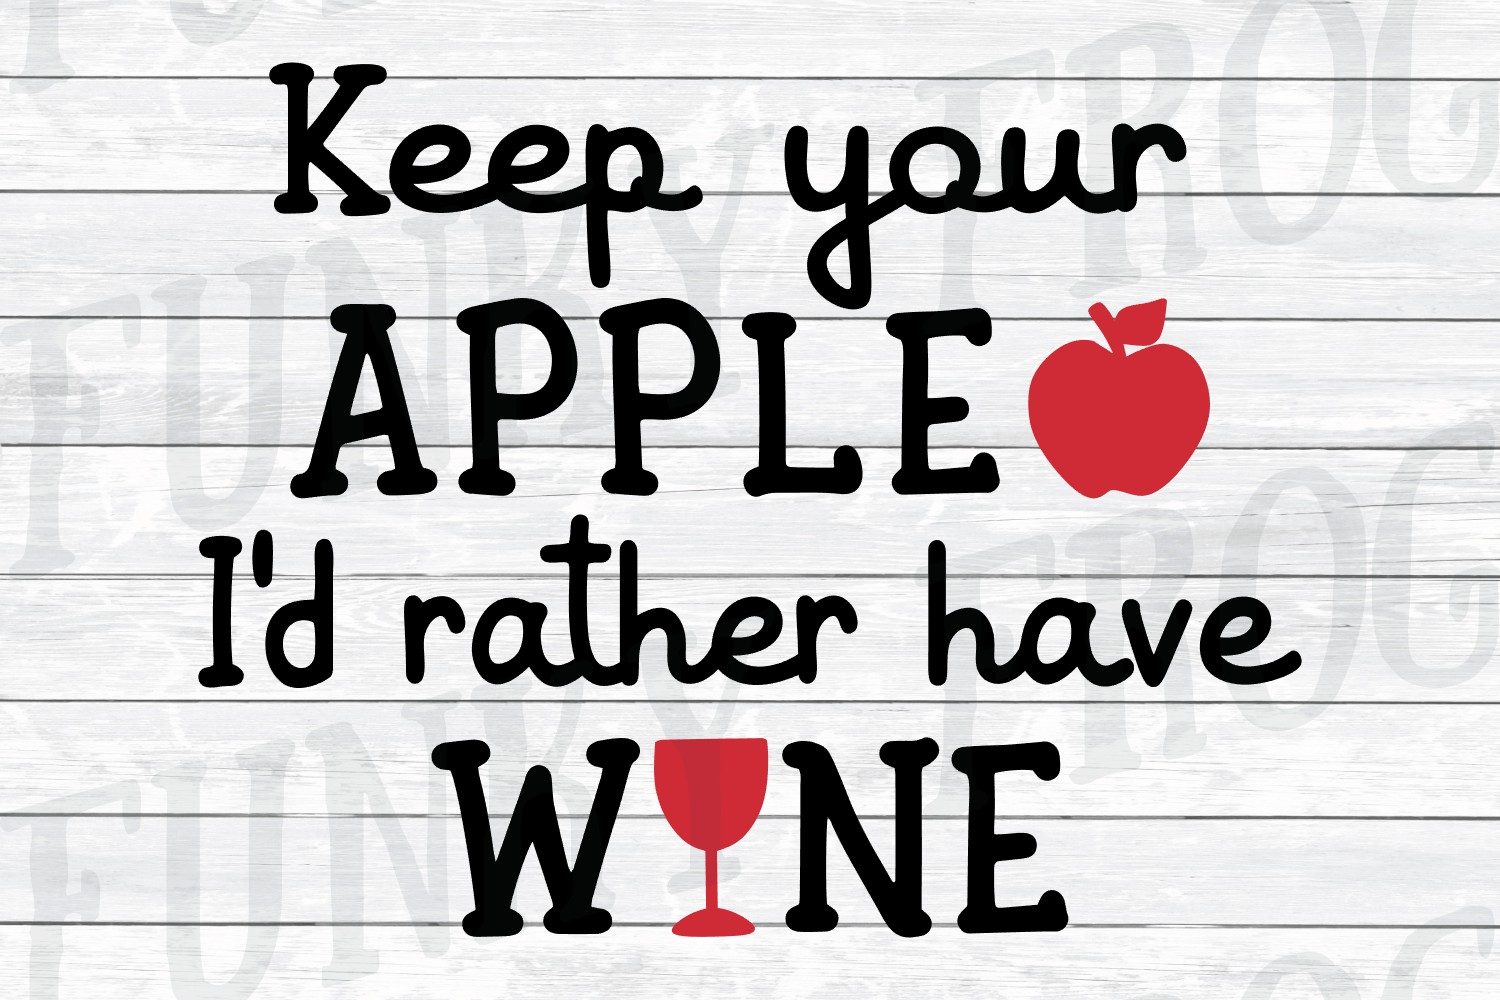 Keep Your Apple I'd Rather Have Wine - Teacher SVG Cut File example image 3